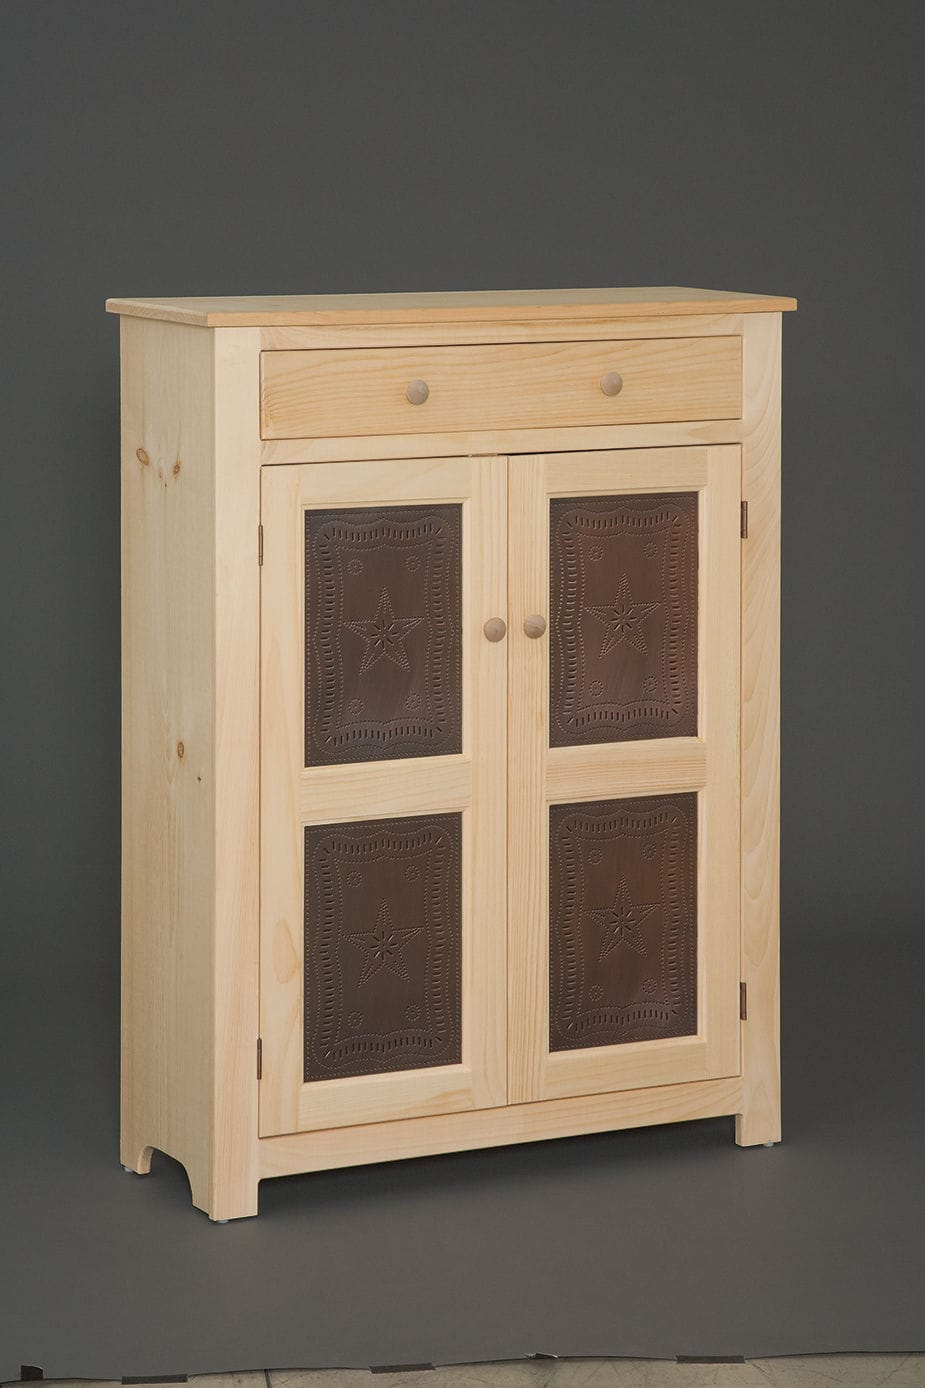 Photo of: NRC Double Jelly Cabinet